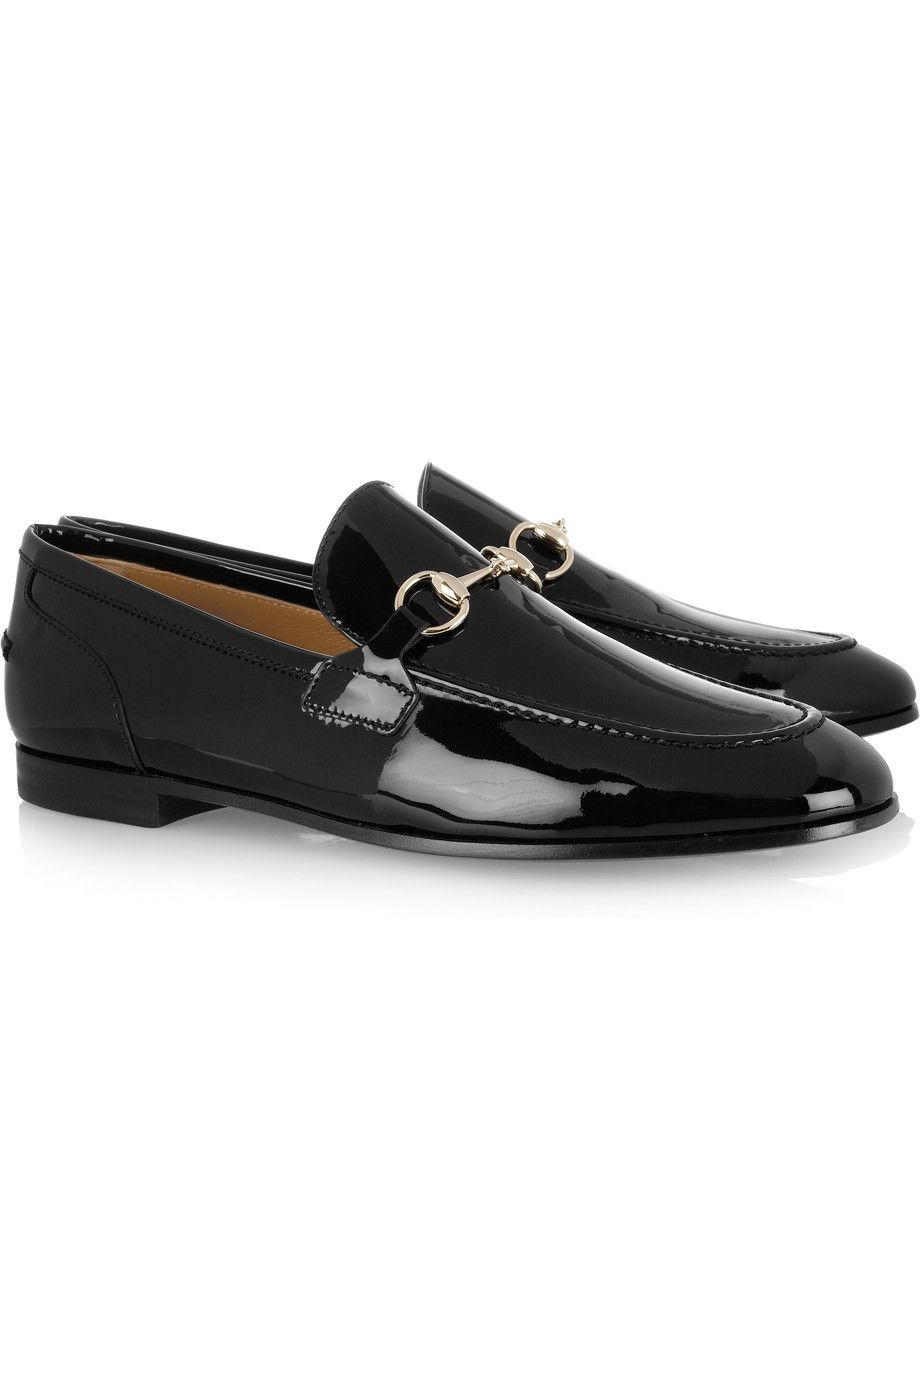 d46fb124b GUCCI Horsebit-detailed patent-leather loafers for women | Shoes ...